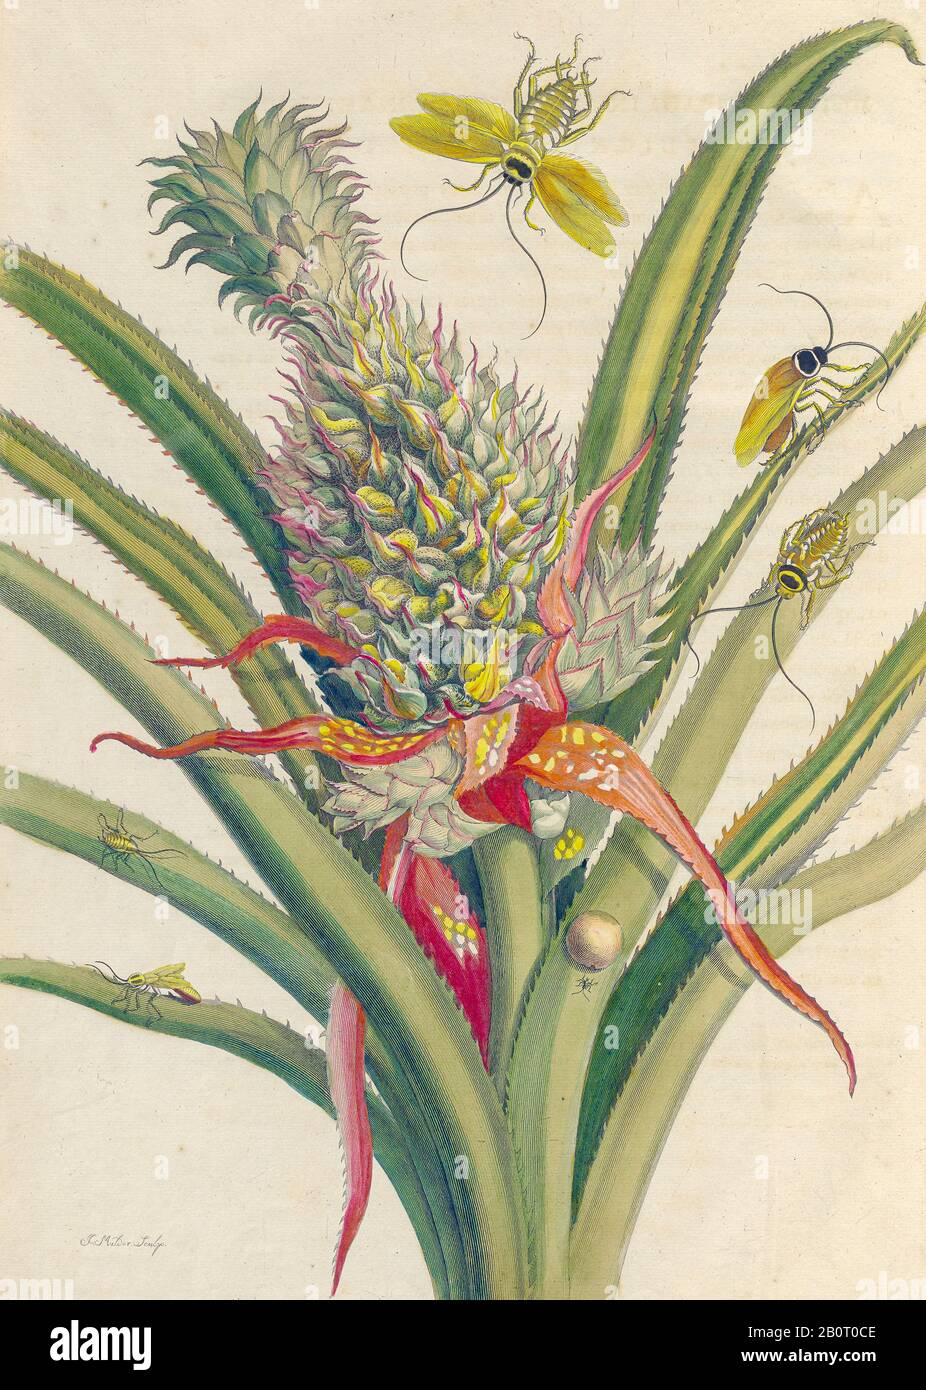 Pineapple and butterflies from Metamorphosis insectorum Surinamensium (Surinam insects) a hand coloured 18th century Book by Maria Sibylla Merian publ Stock Photo